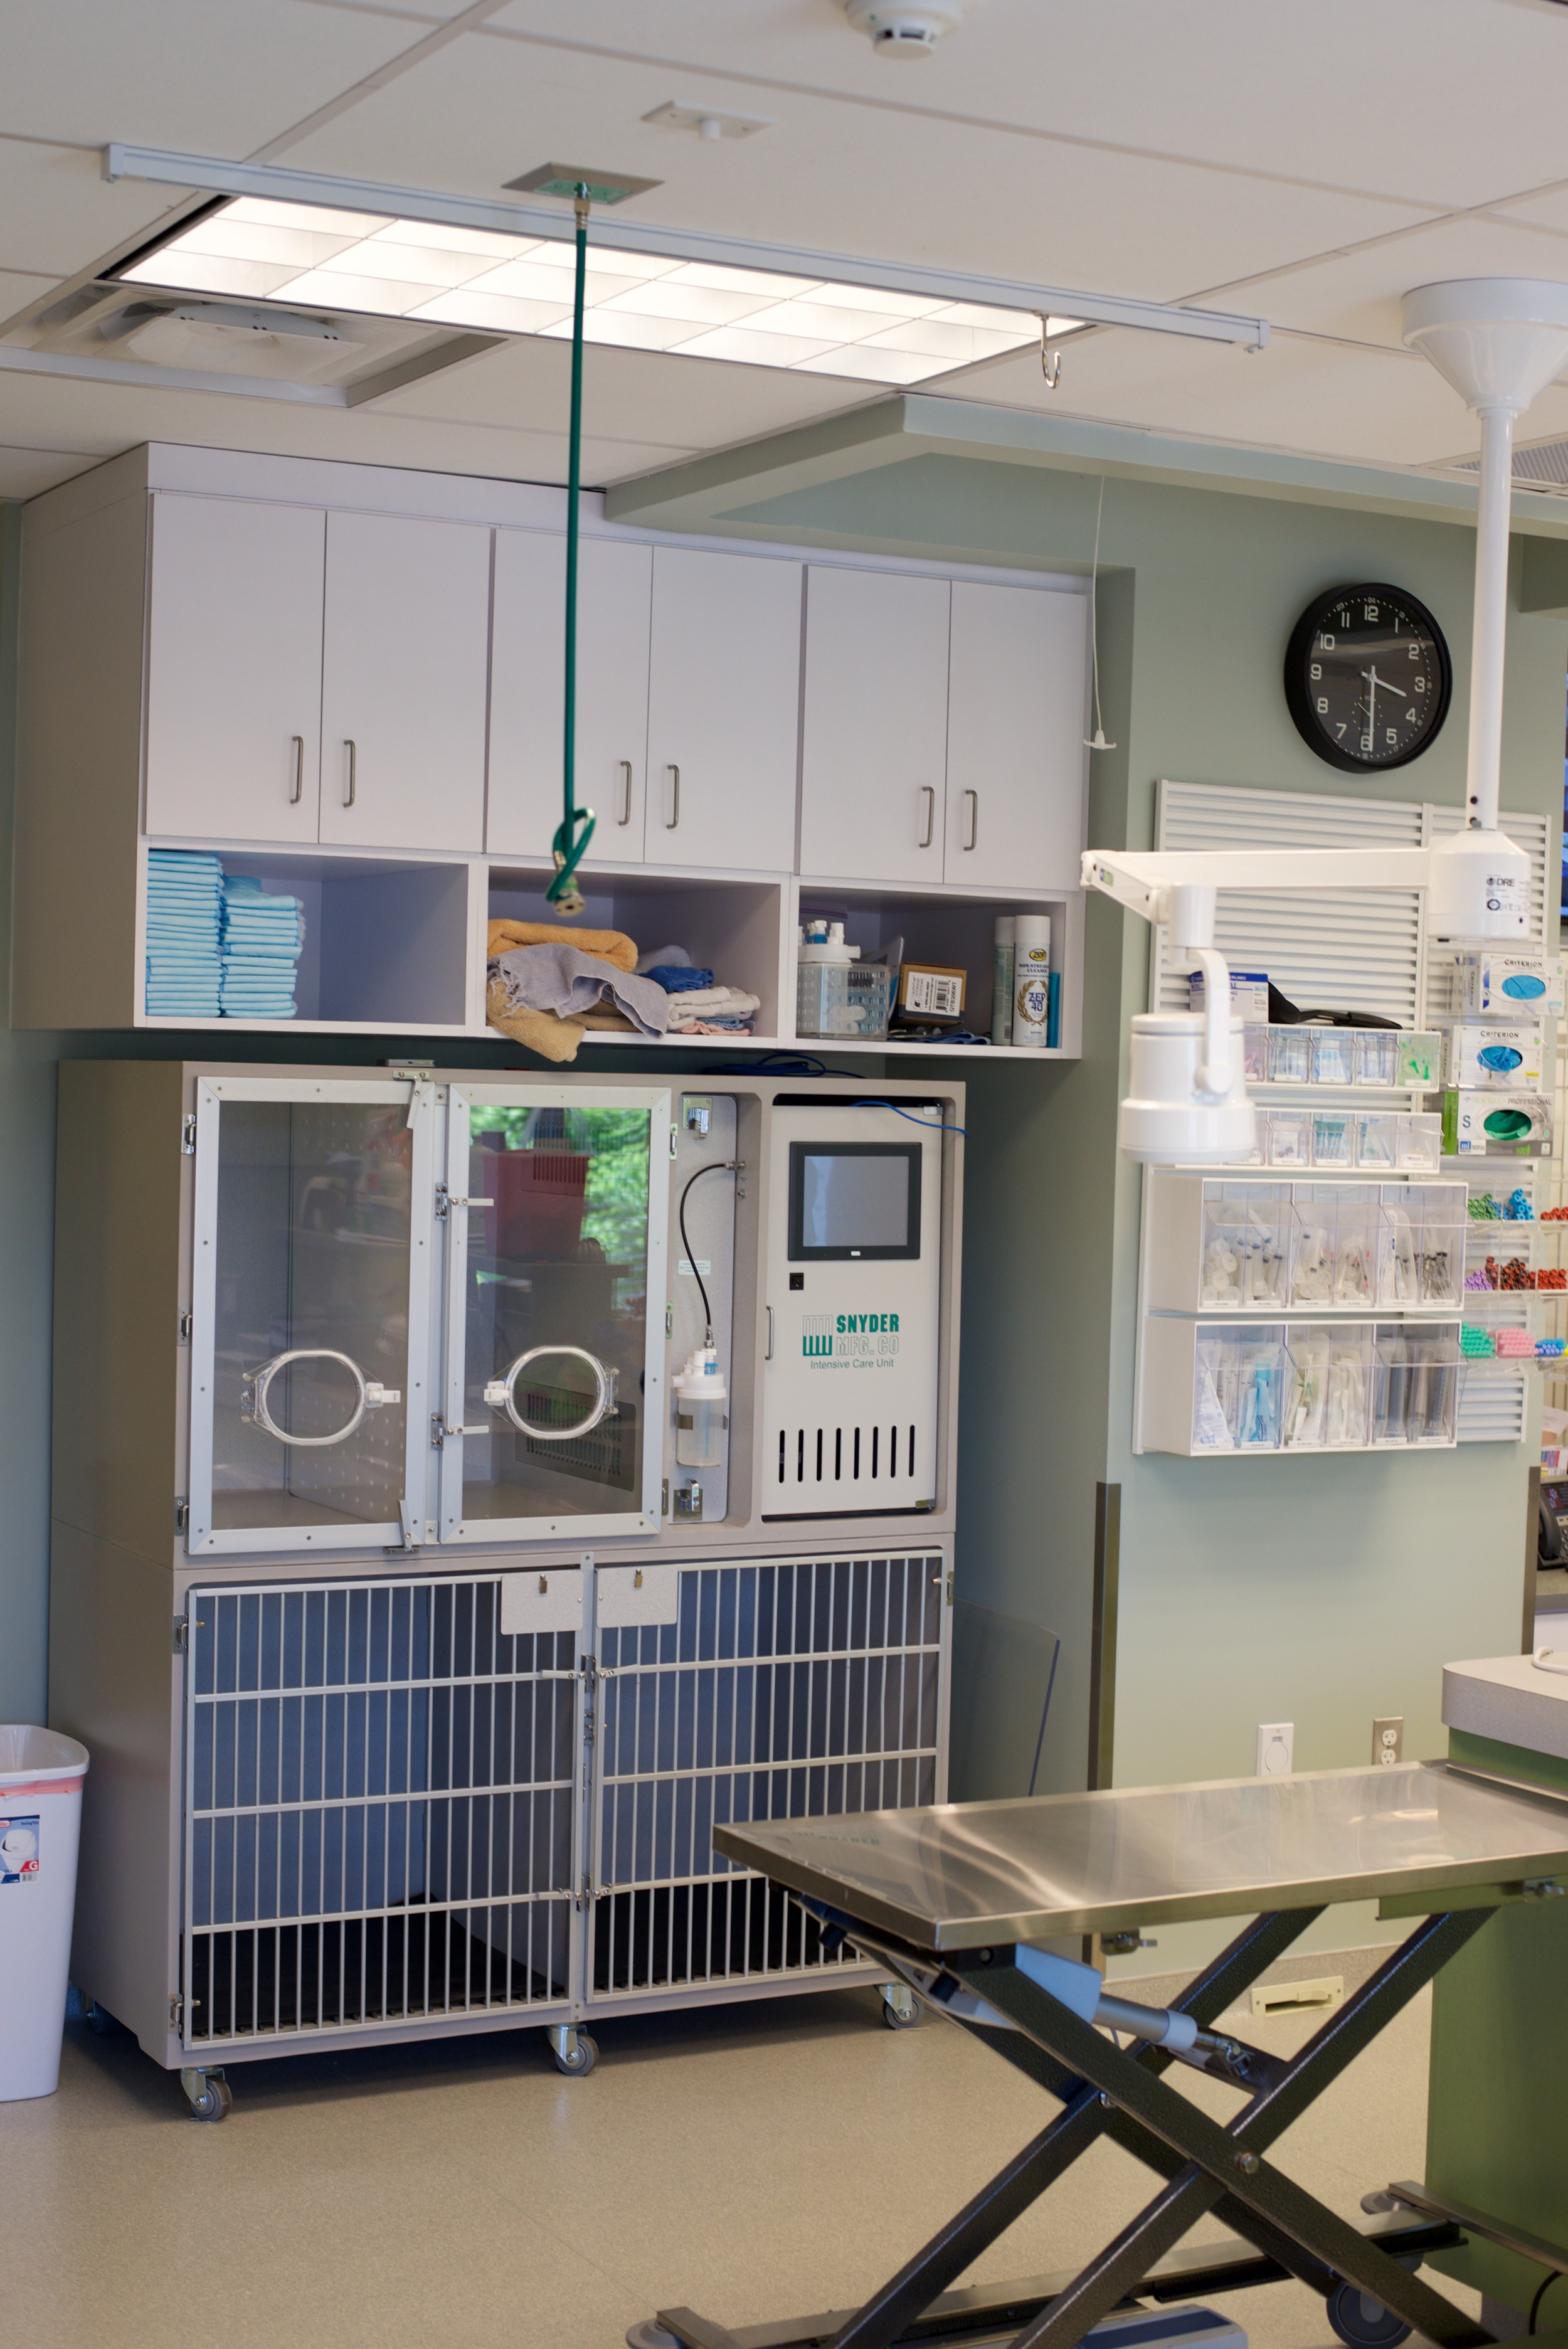 ICU Cage Bank